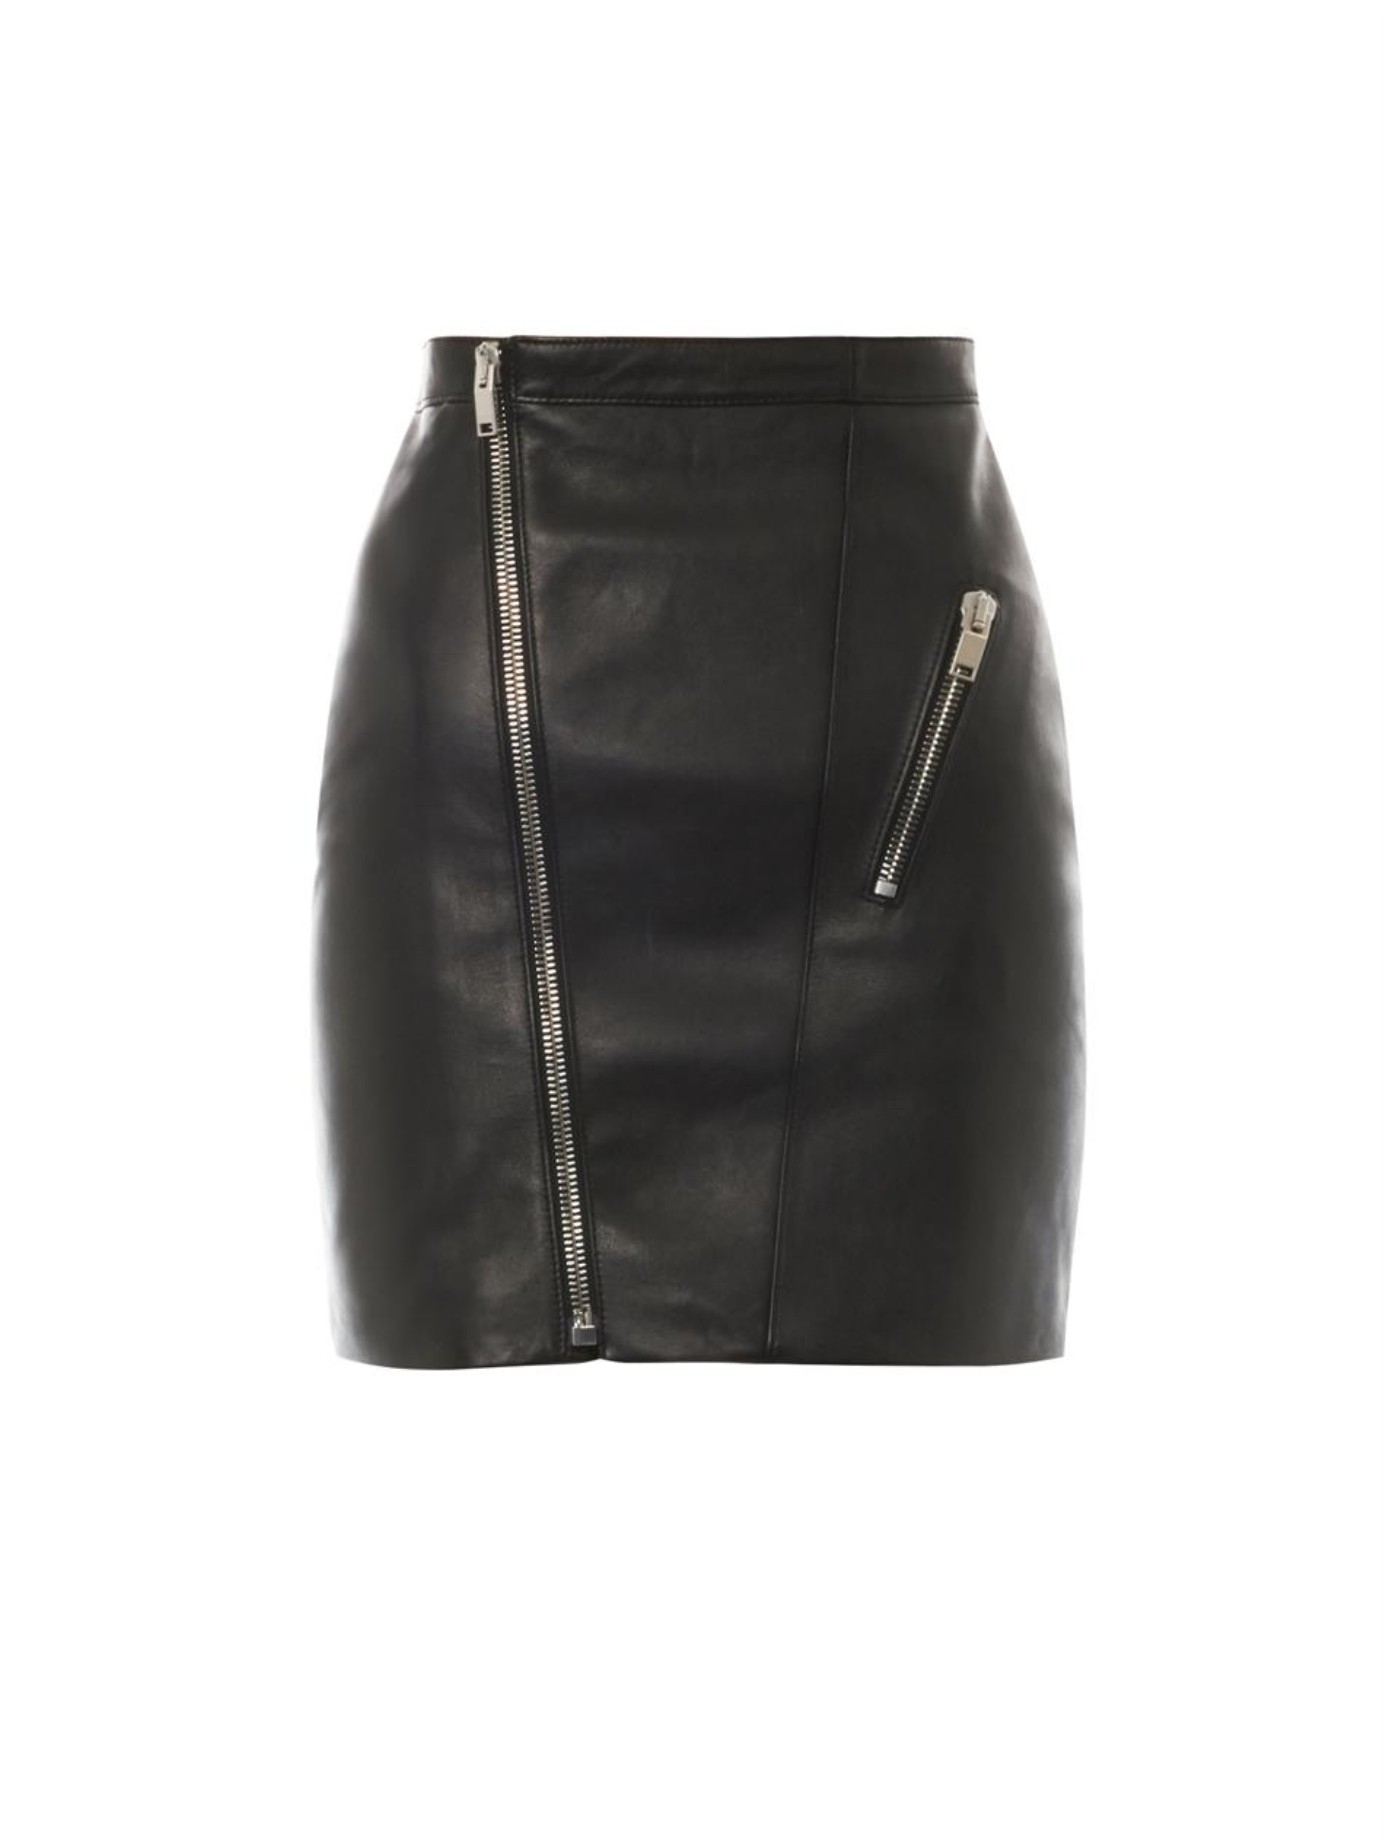 Saint laurent Zip-Front Leather Skirt in Black | Lyst